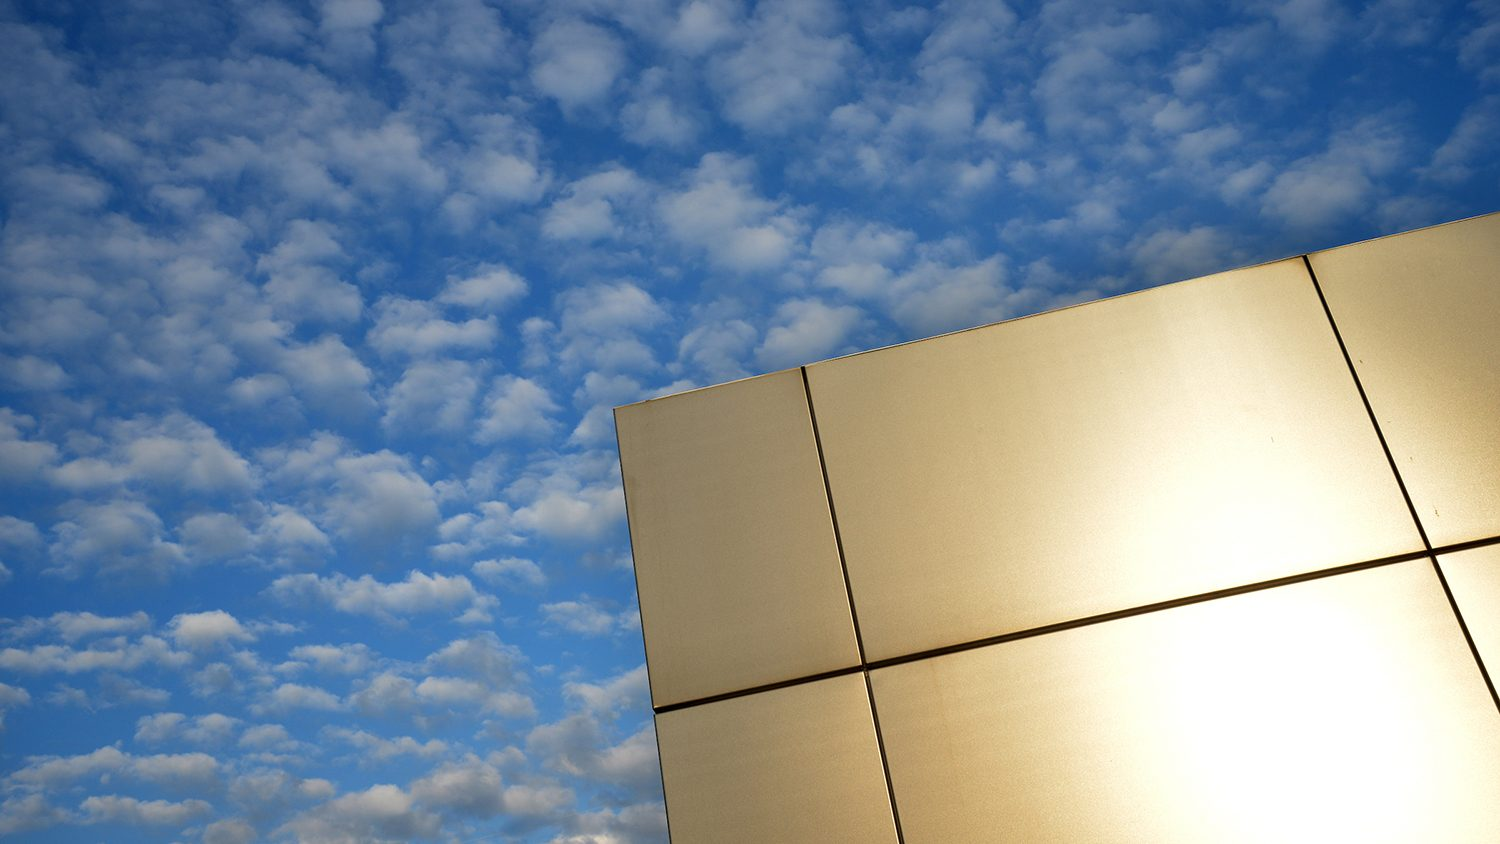 One corner of the Centennial Gateway against a cloud-filled sky